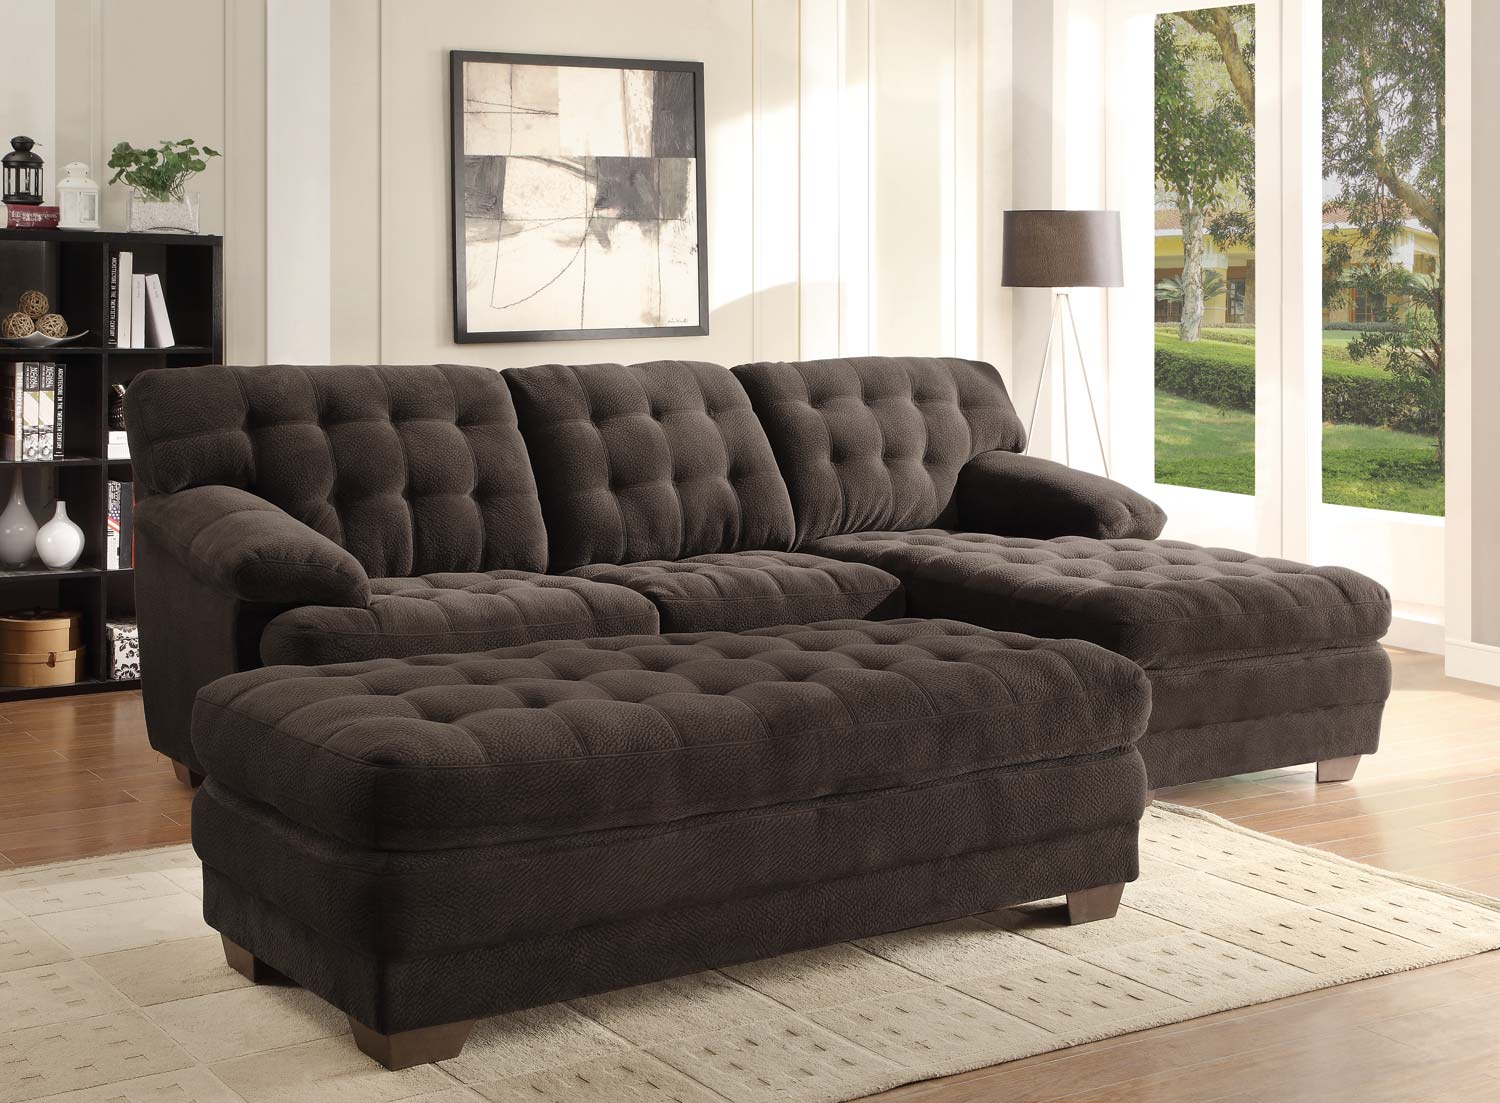 Homelegance brooks sectional sofa set chocolate for Brown microfiber chaise lounge